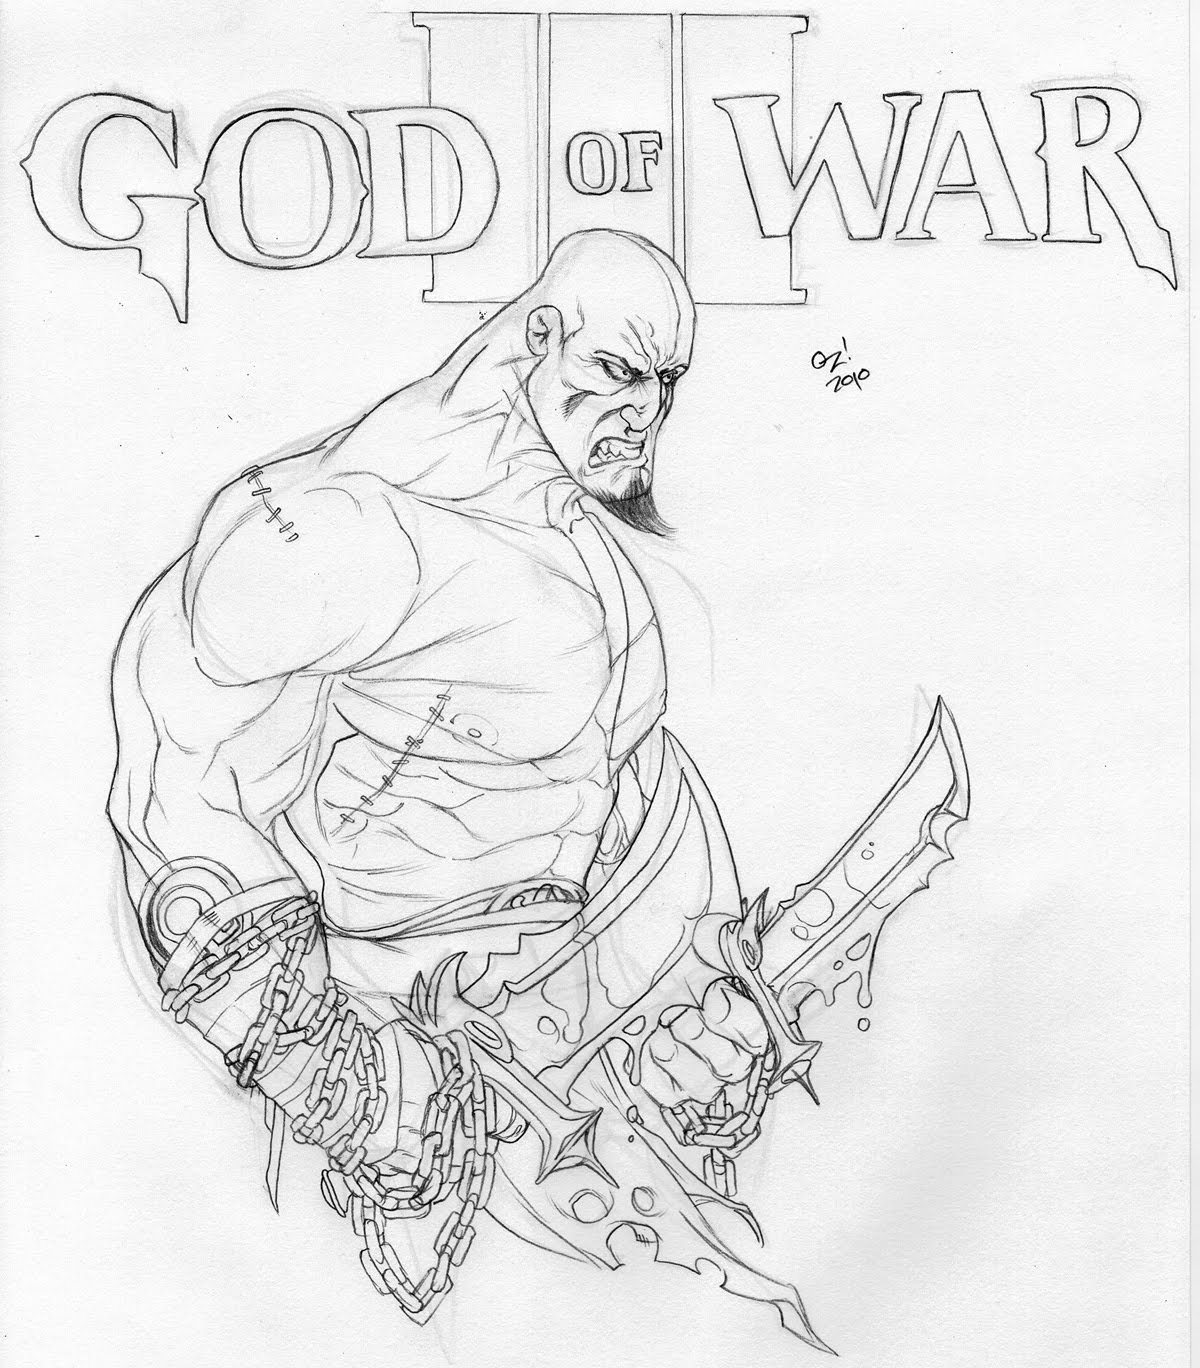 god of war coloring pages - photo#3